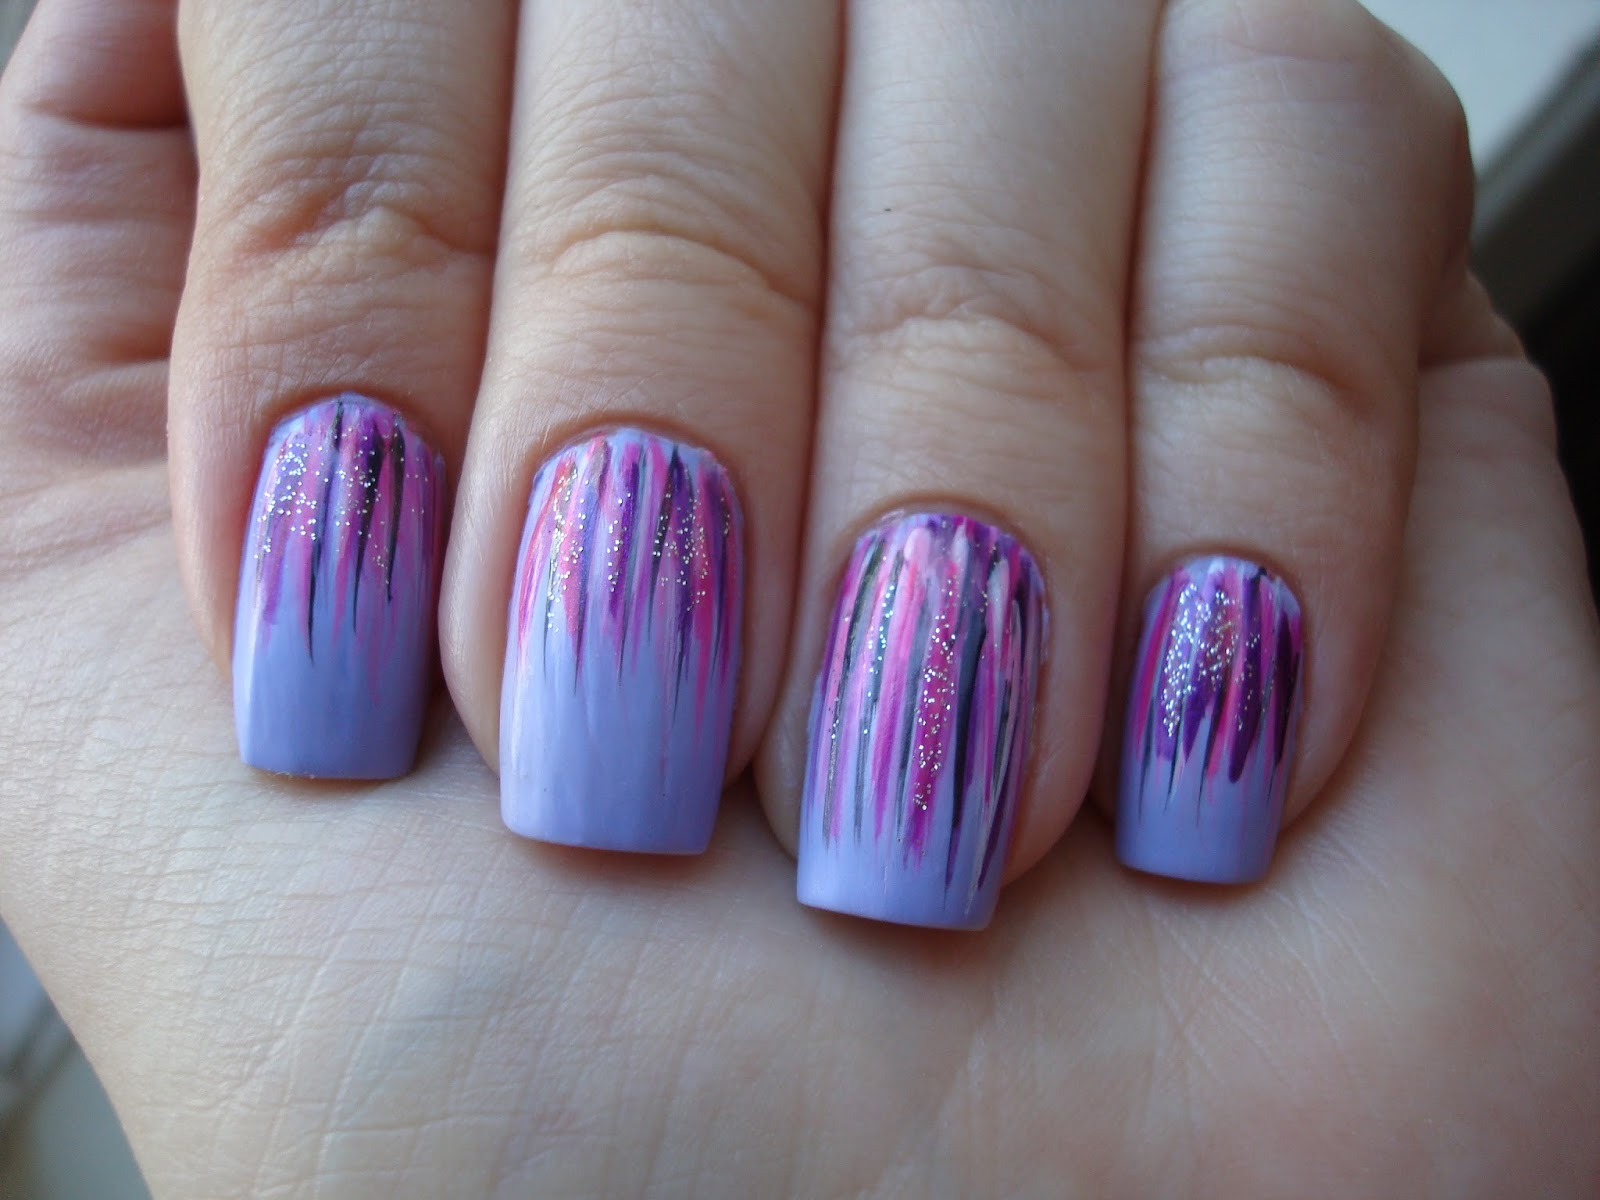 Polished: Nail Striper Overload nails